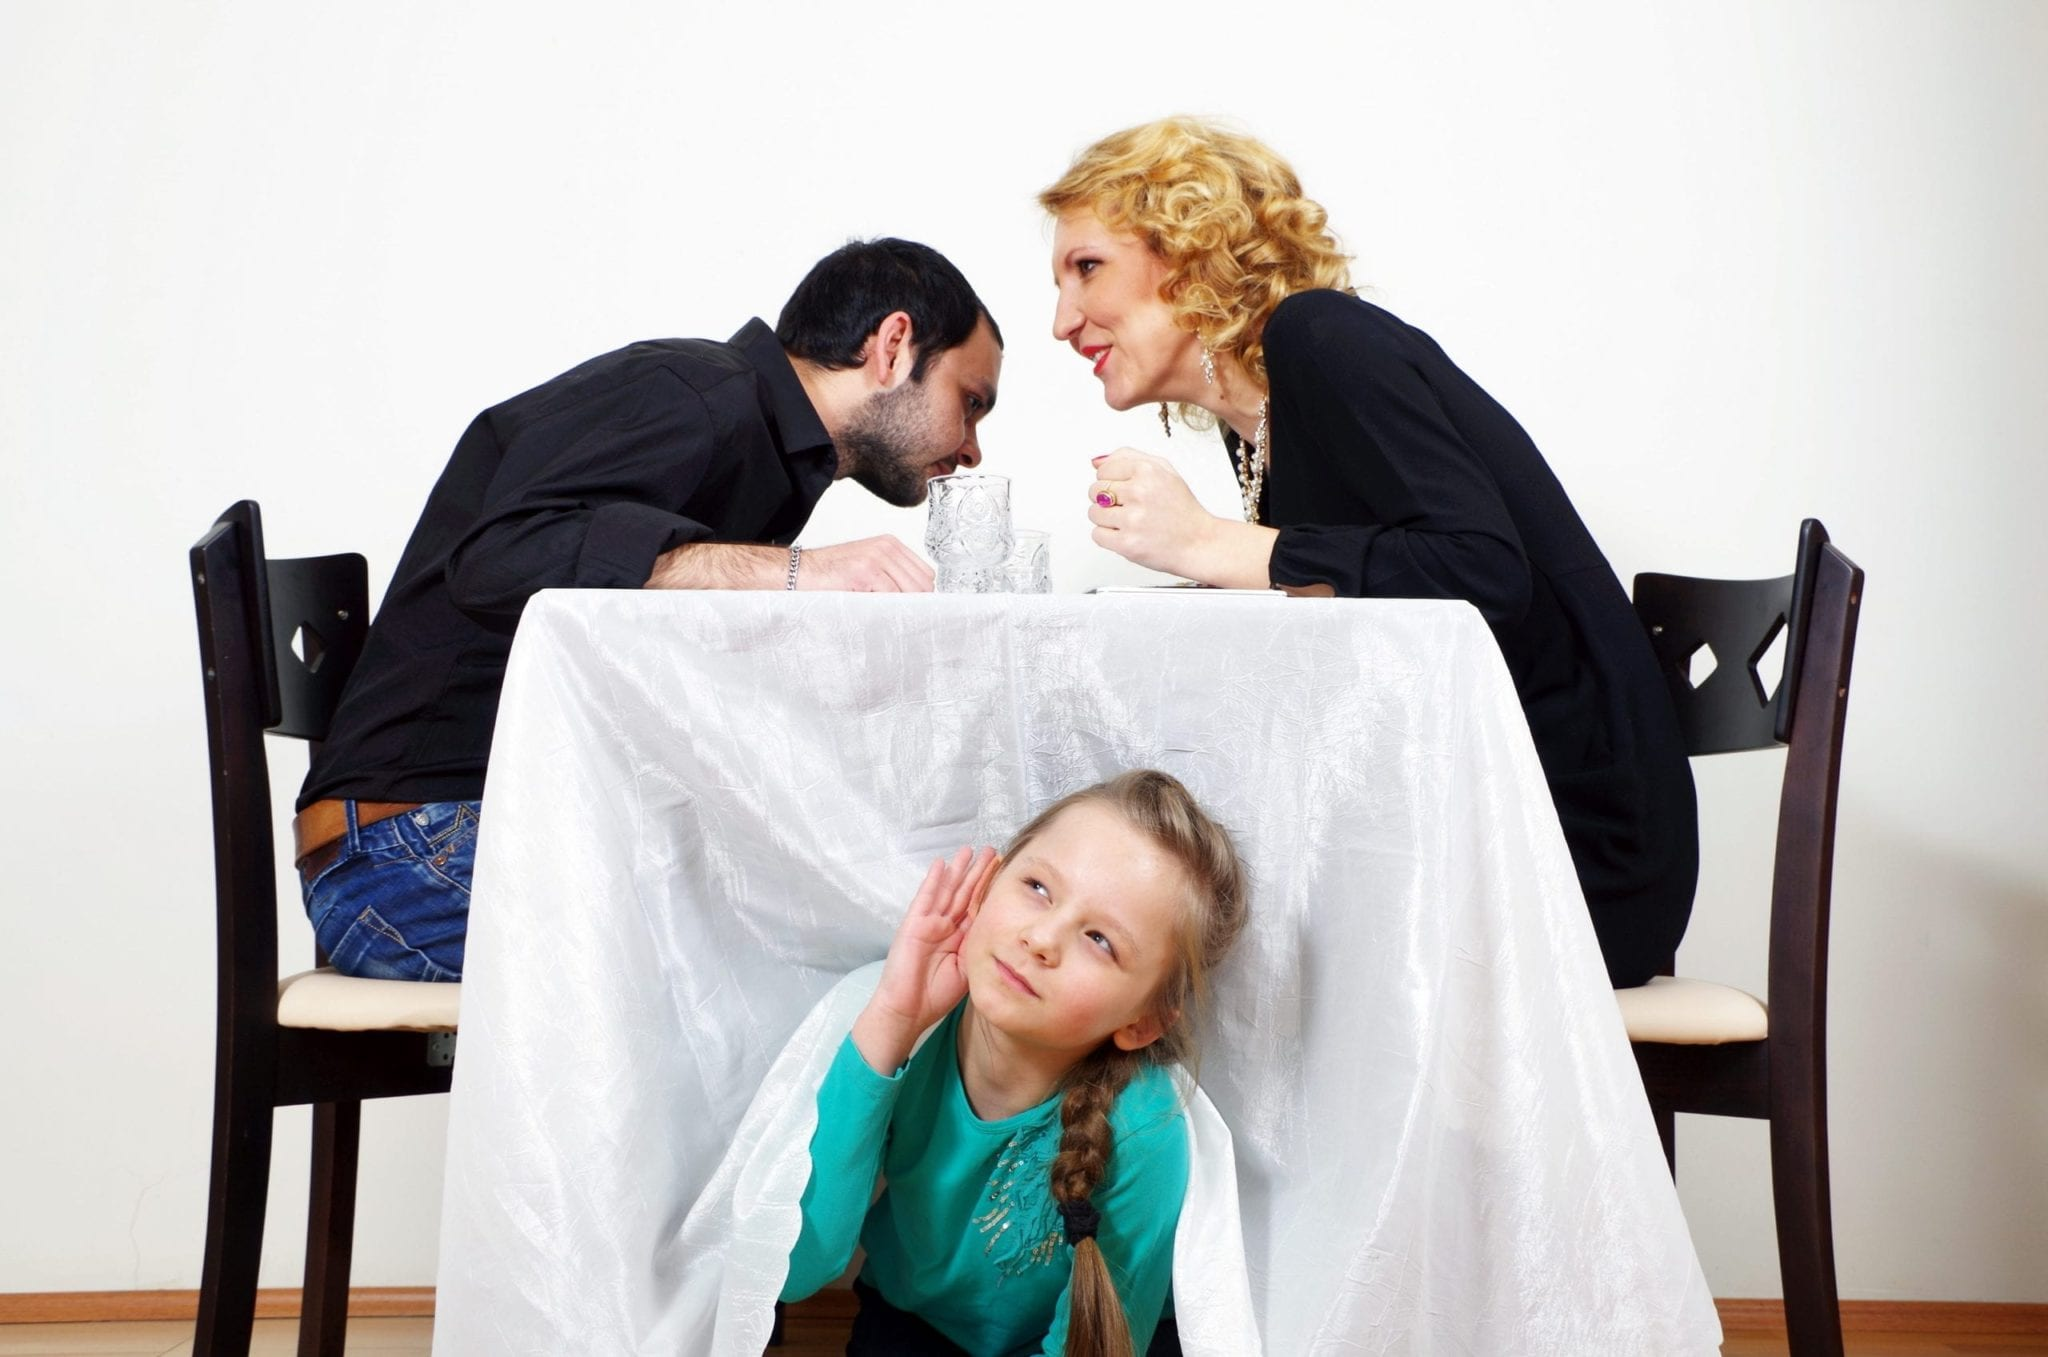 10 Thoughts Children Have That Might Surprise Parents